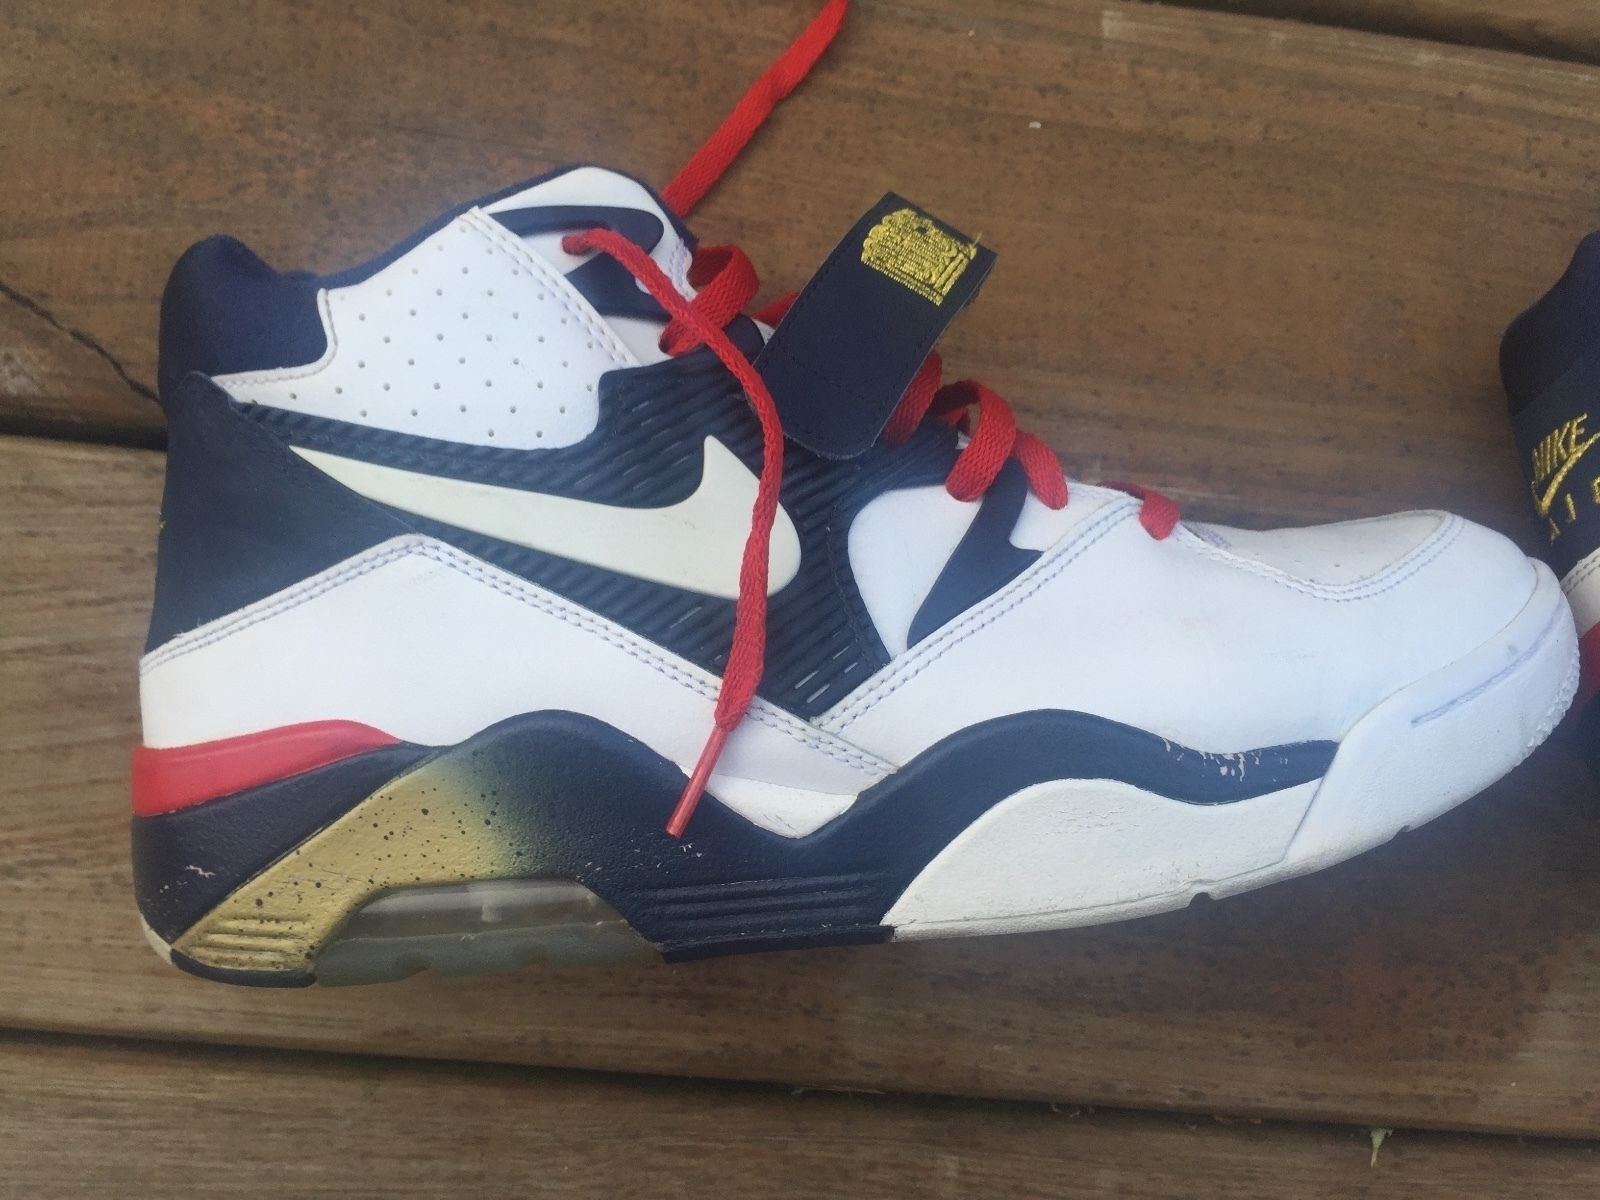 Brand discount Nike Air 180 Barkley Shoes - Olympic Edition - Comfortable